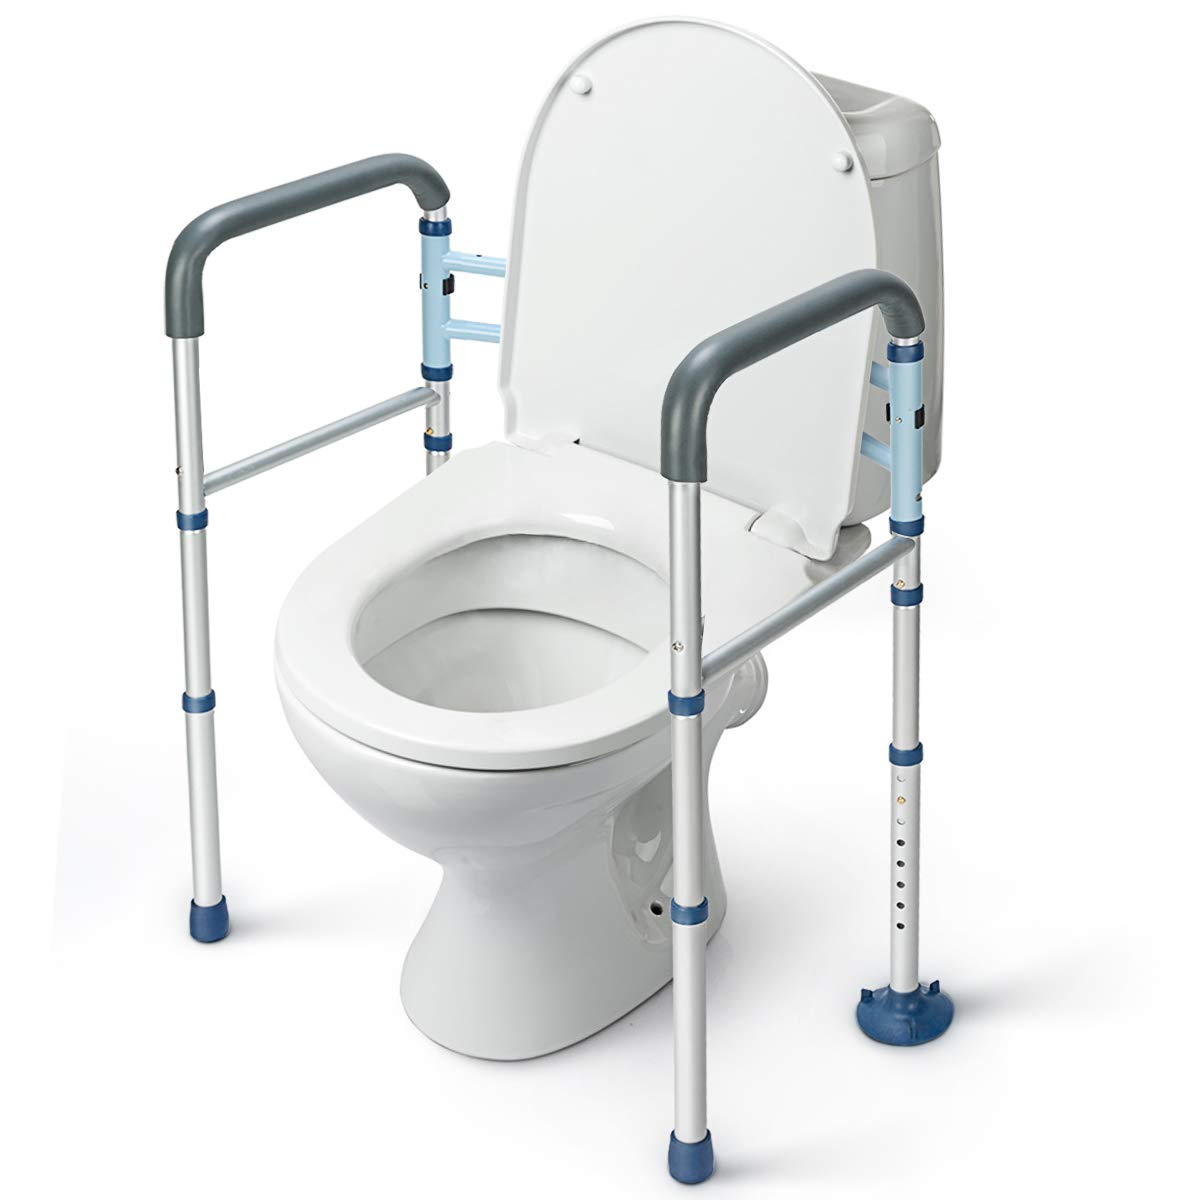 GreenChief Stand Alone Toilet Safety Rail with Free Grab Bar - Heavy Duty Toilet Safety Frame for Elderly, Handicap and Disabled - Adjustable Freestanding Toilet Handrails Helper, Fit Any Toilet  by GreenChief